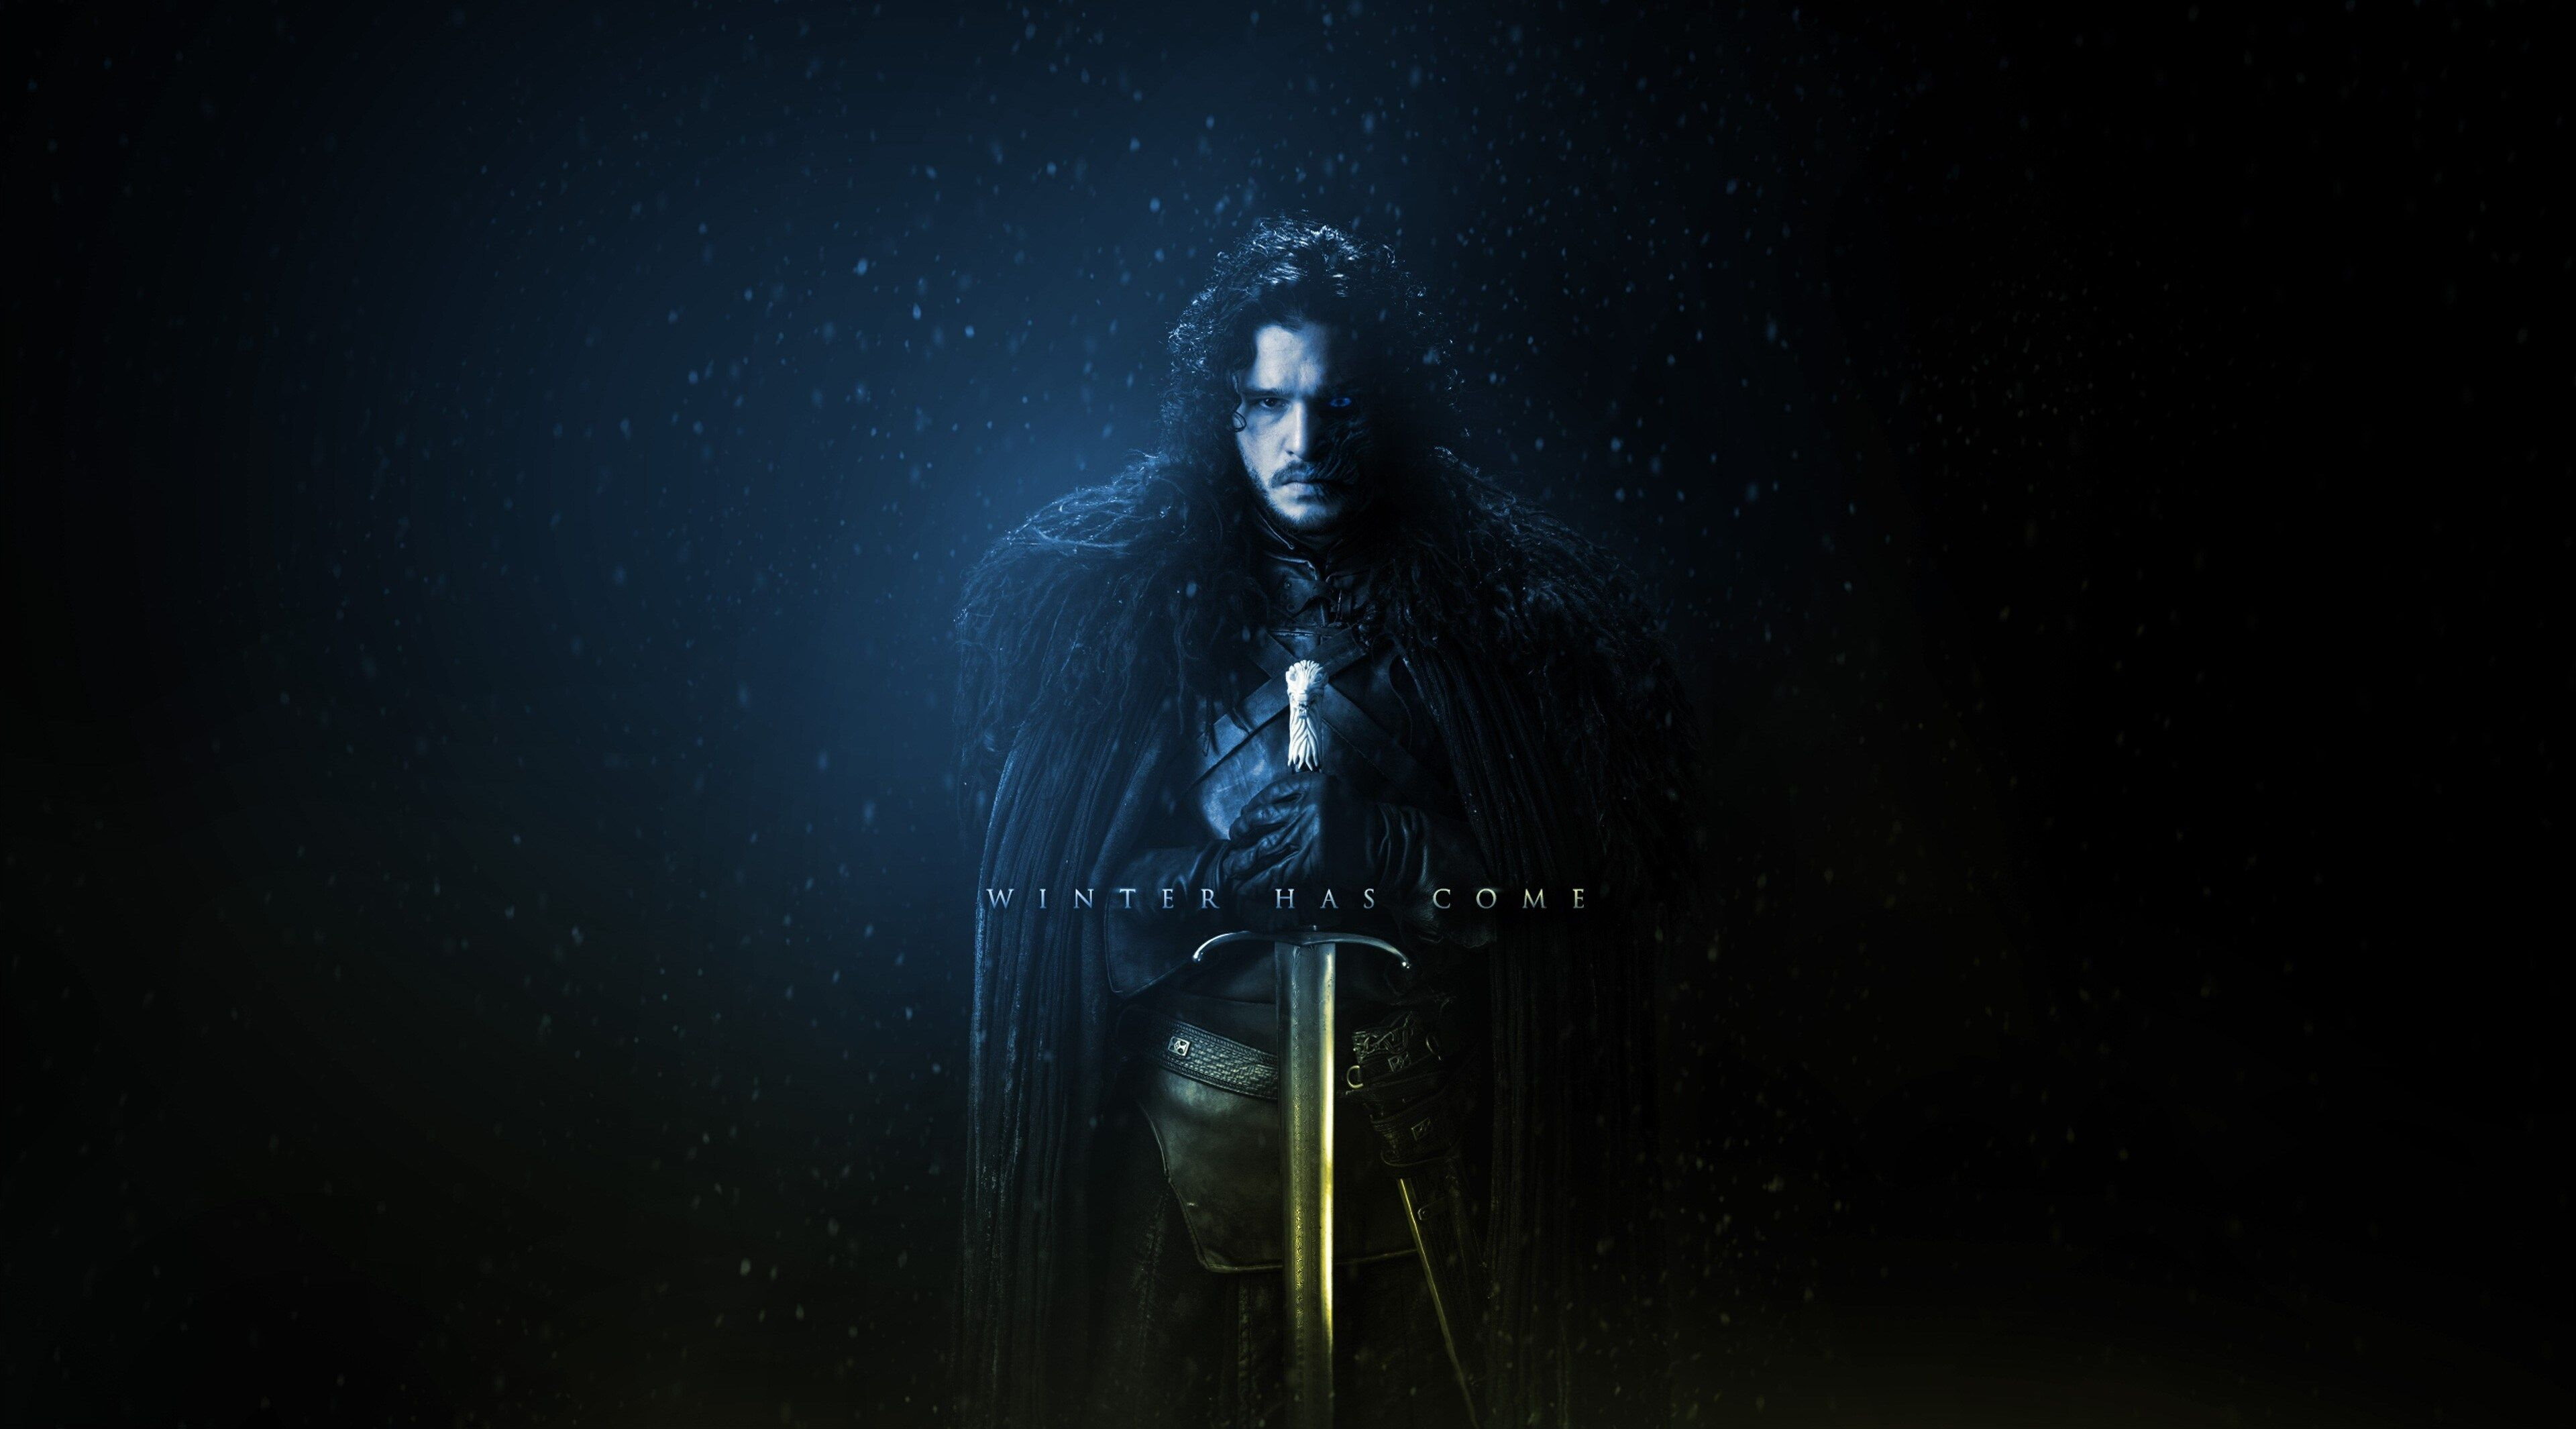 Hd Wallpapers Backgrounds For Game Of Thrones Free For: 3840x2130 Game Of Thrones Season 7 4k Screensaver